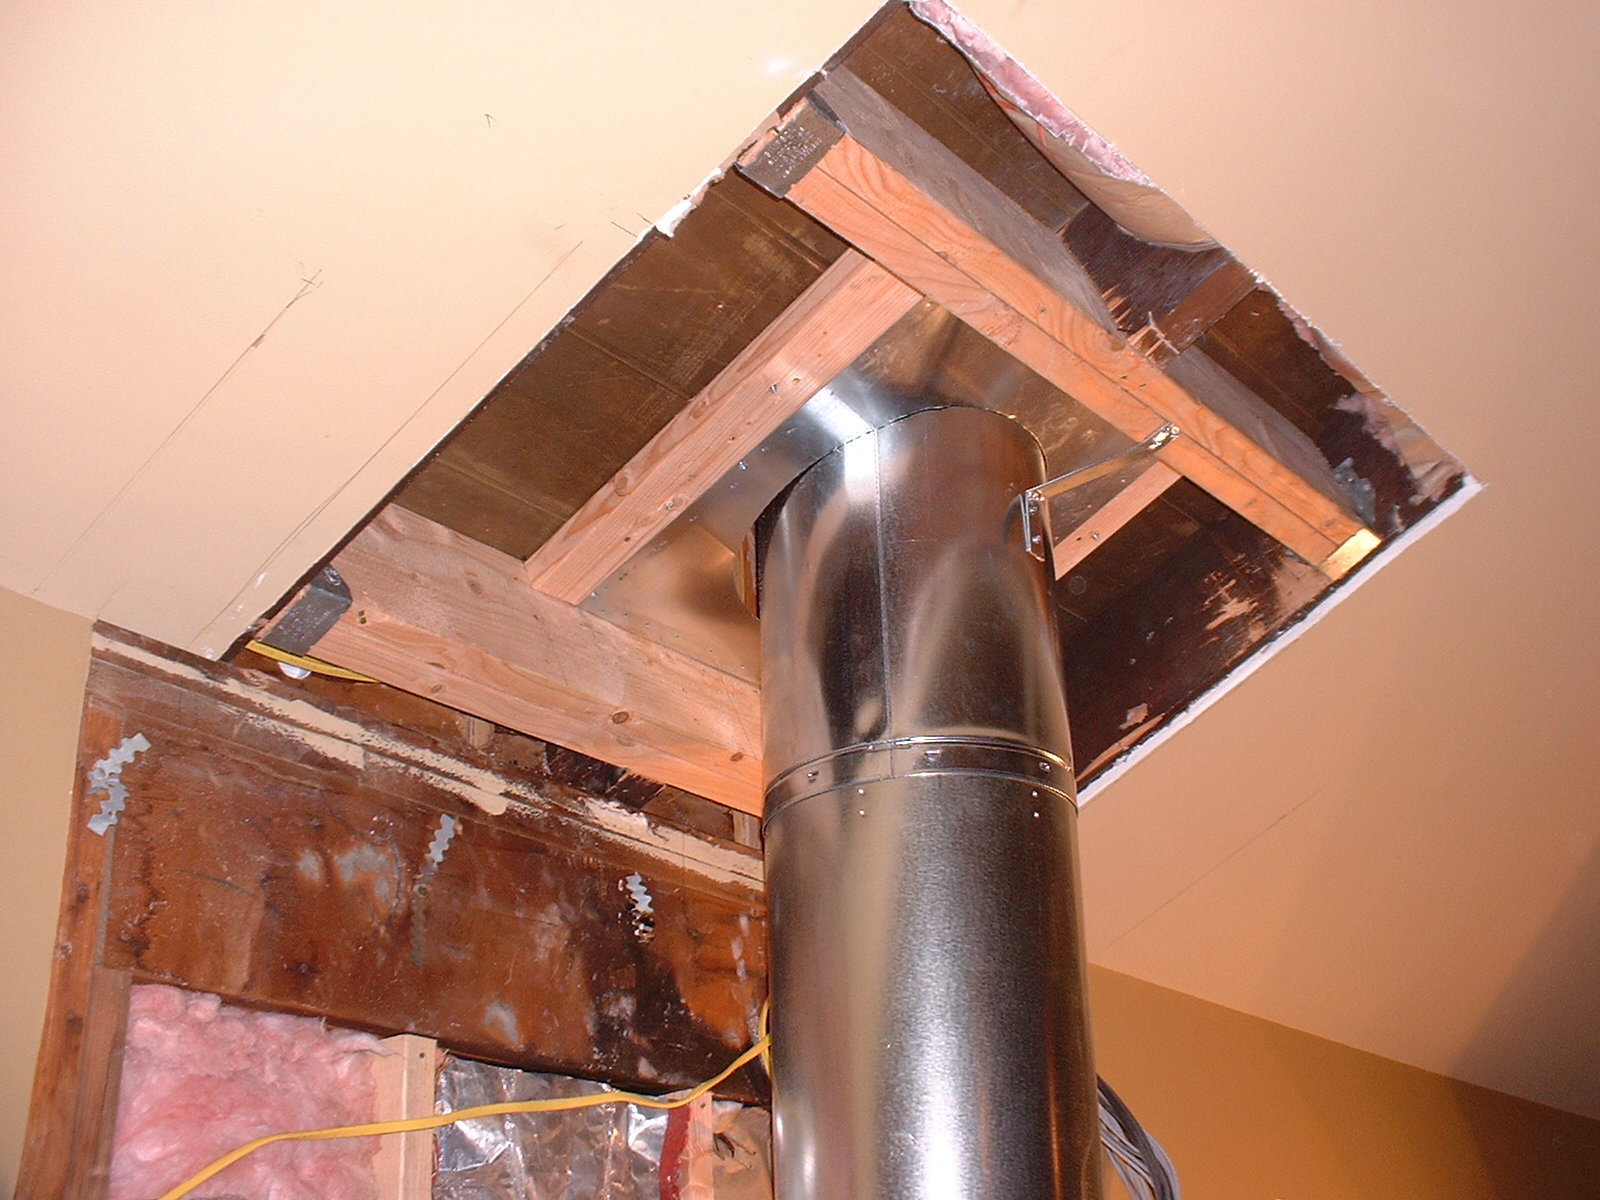 The chimney stack had to go through the cieling and onto the roof.